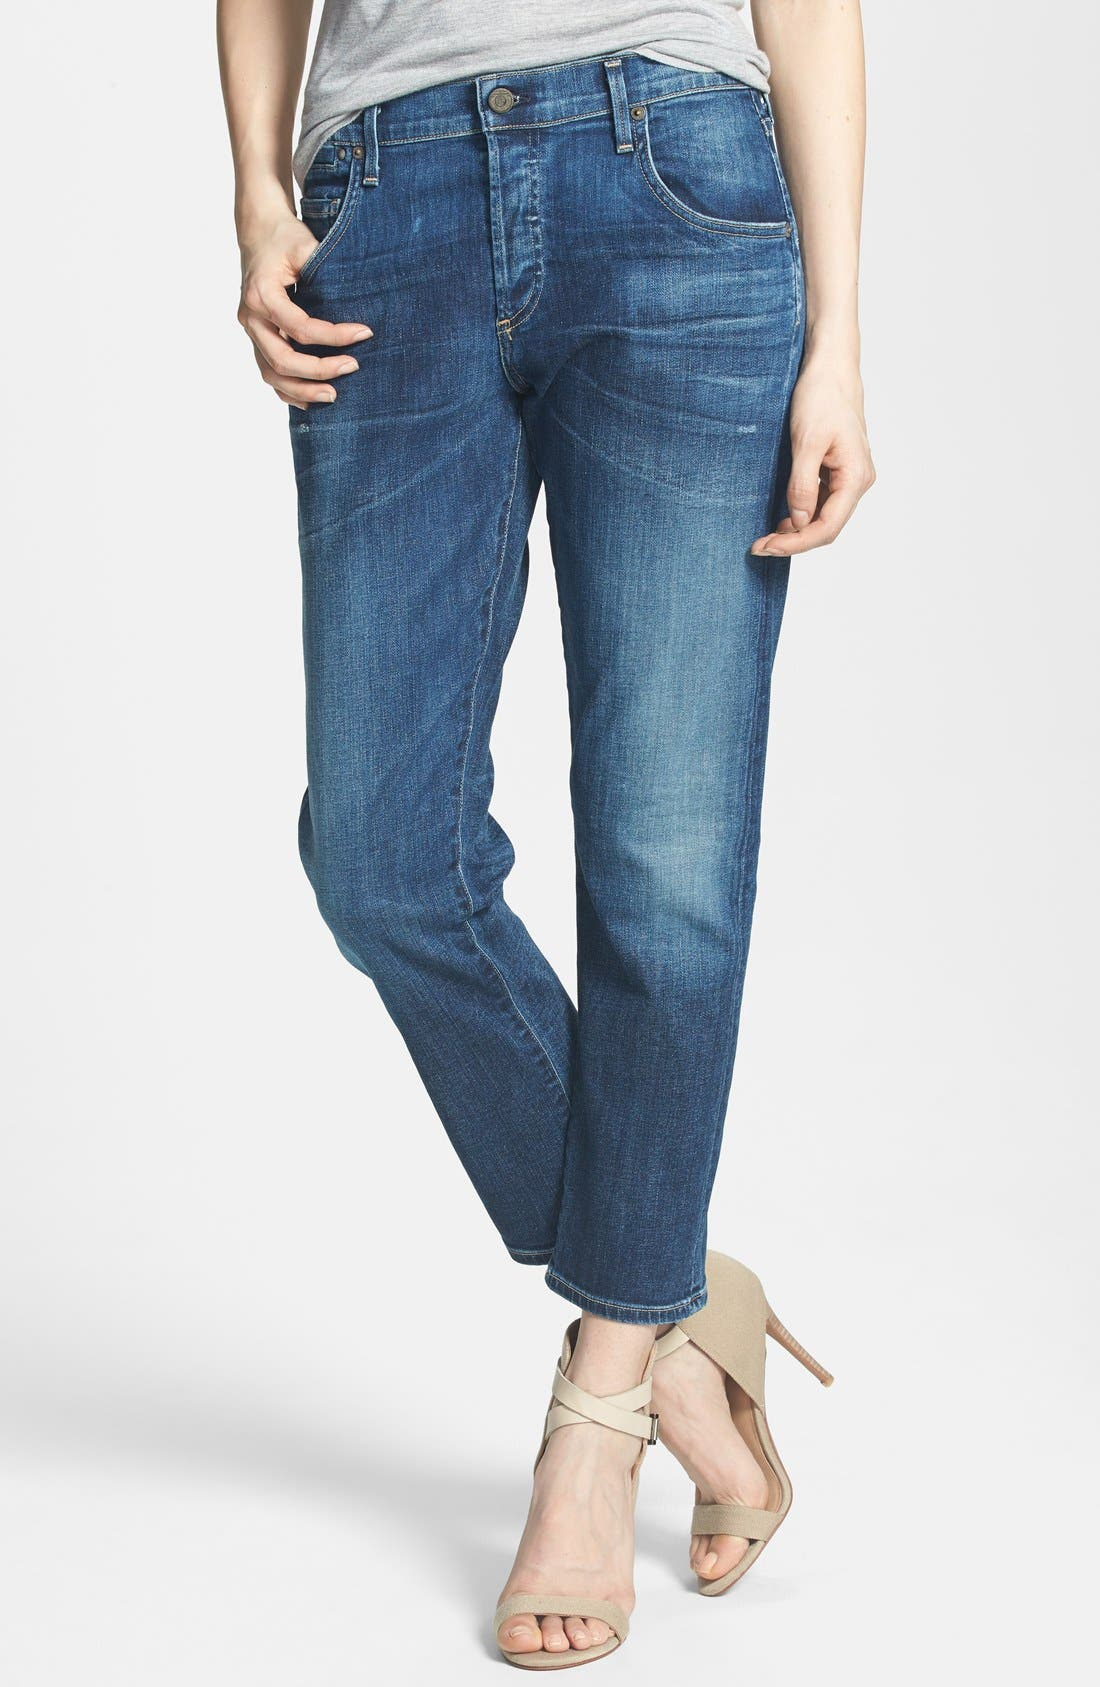 J Brand Jeans & Denim24 / 7 Customer Service · Login With Your Amazon ID.